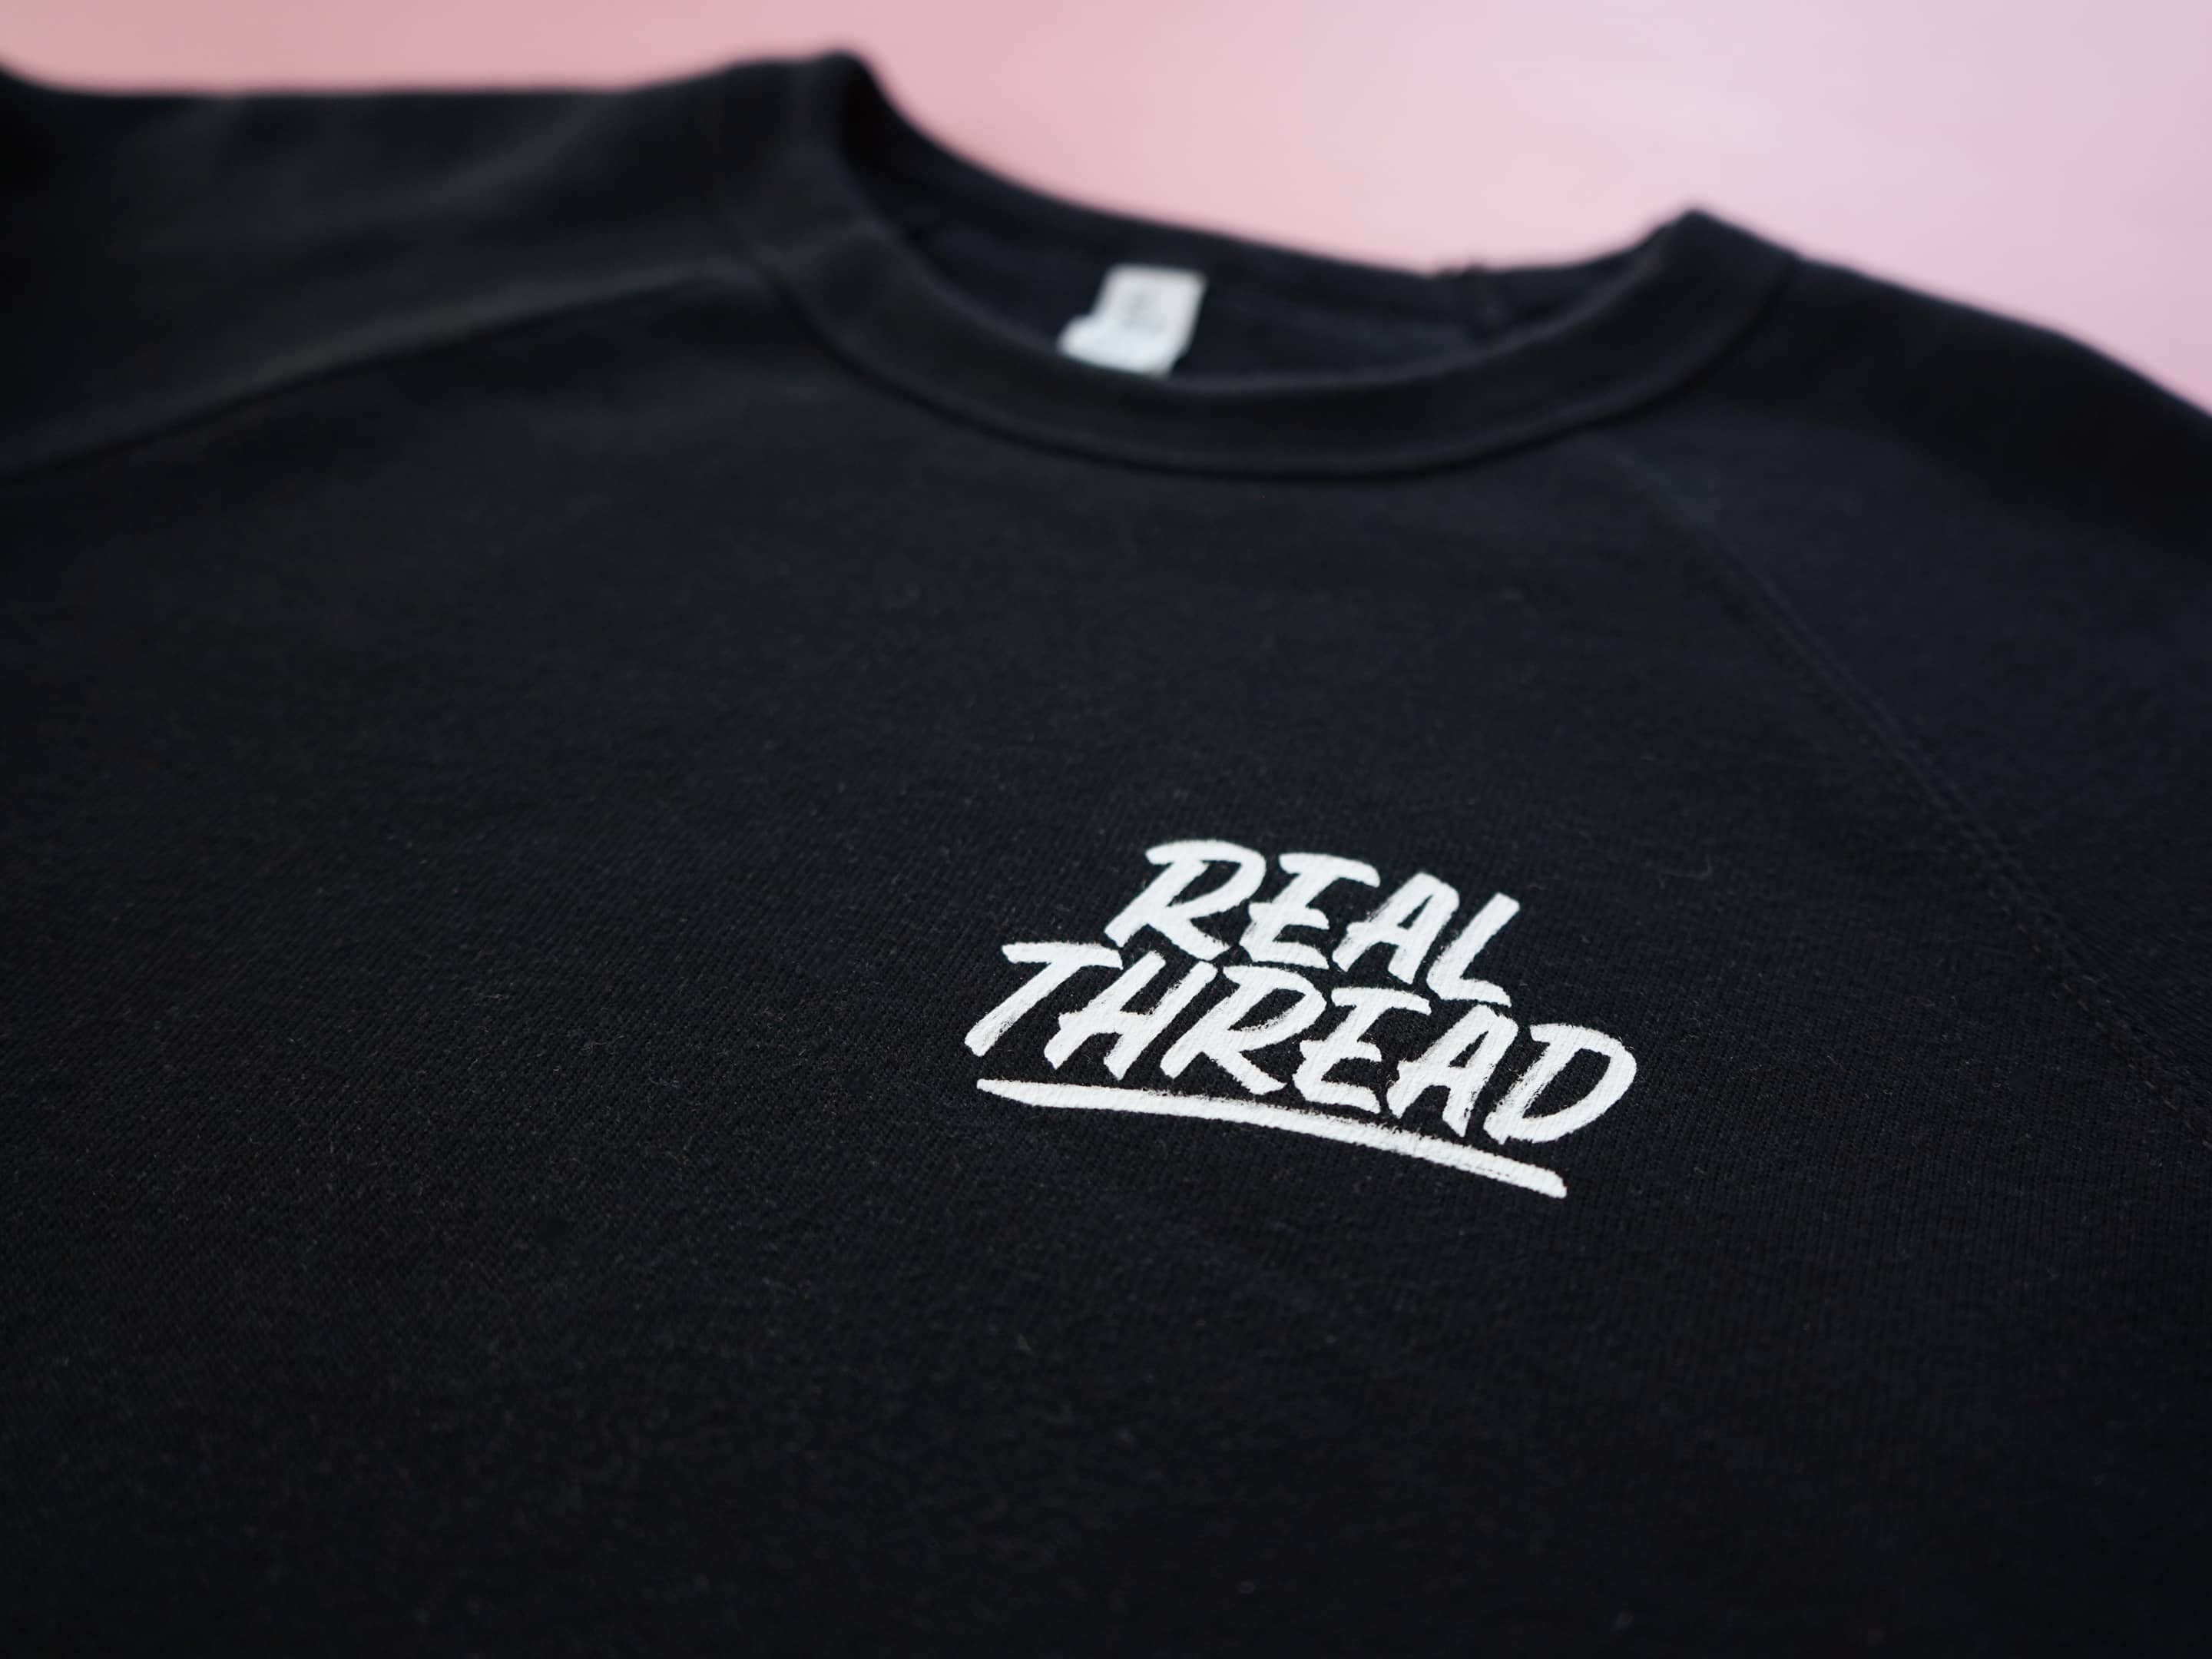 Real Thread T-Shirt Design